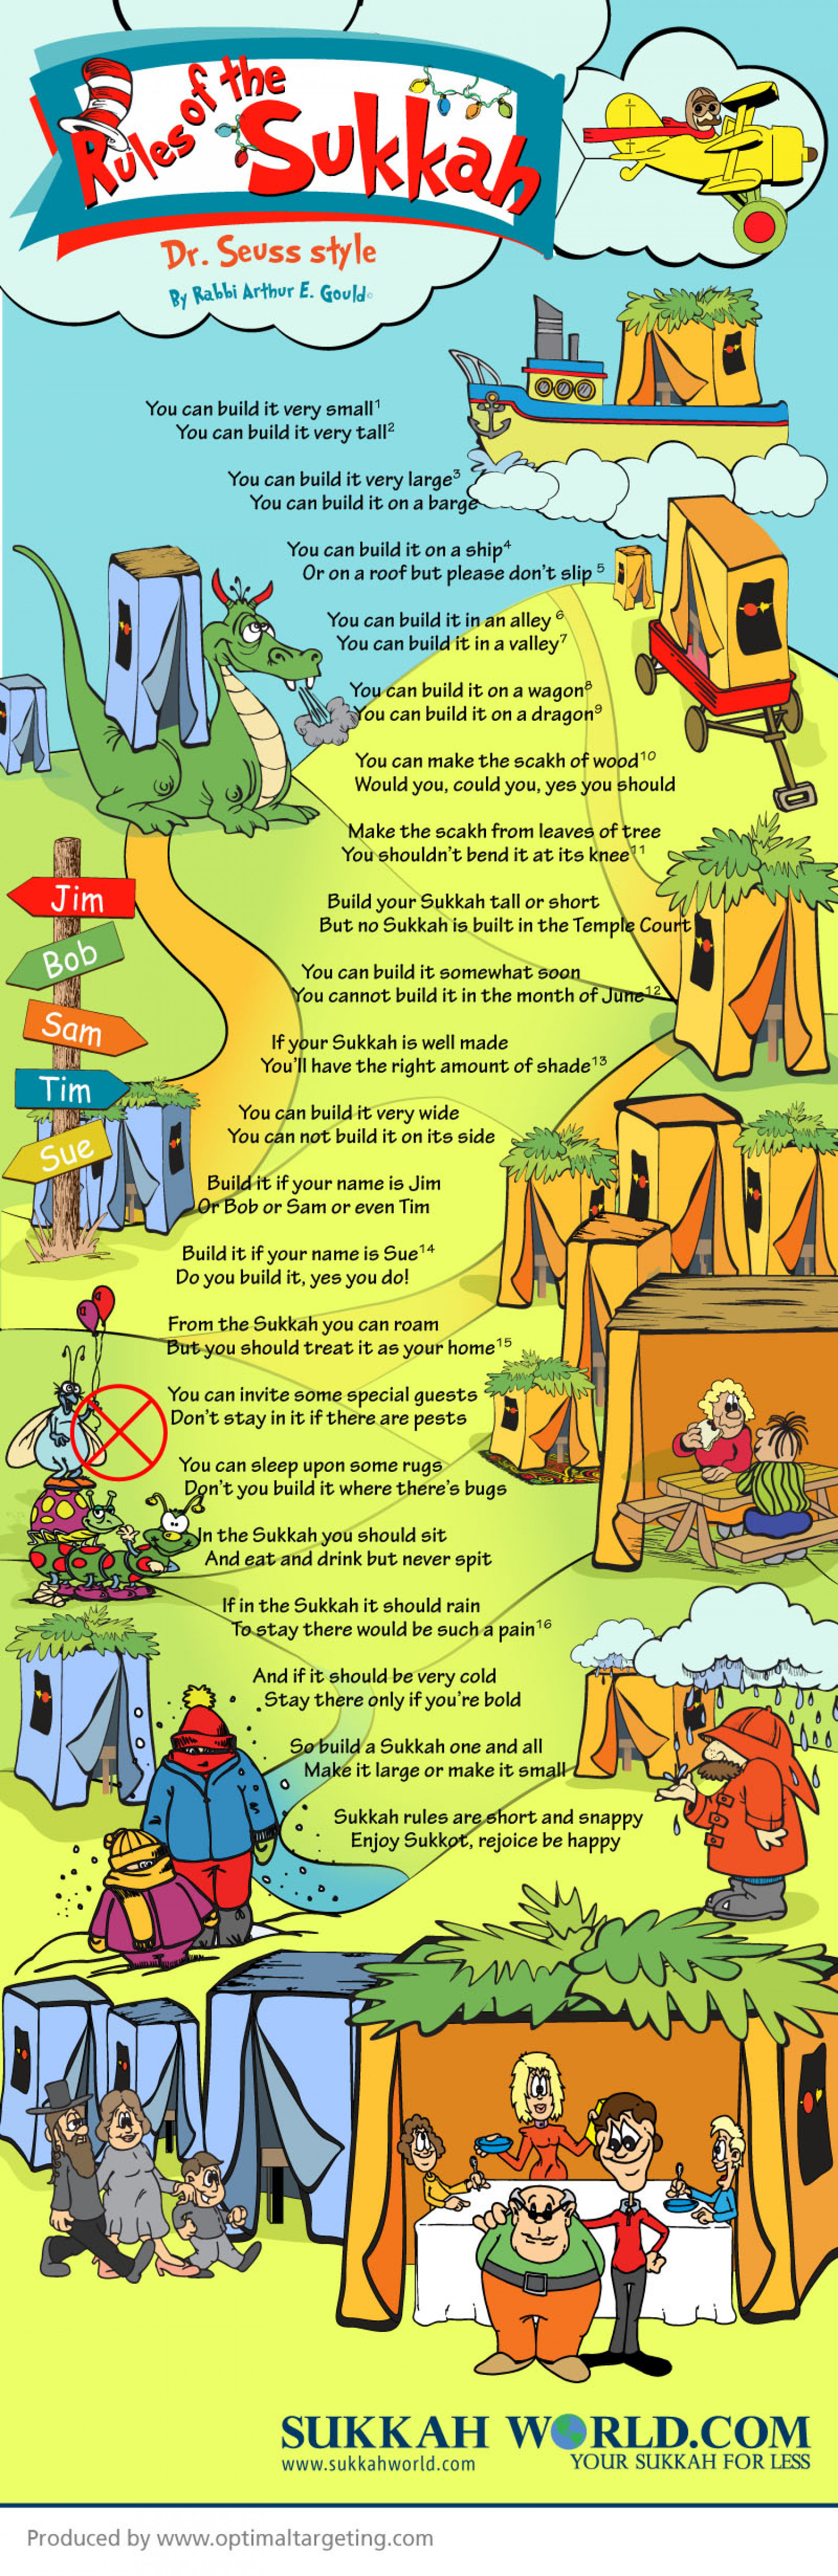 Rules of the Sukkah Infographic